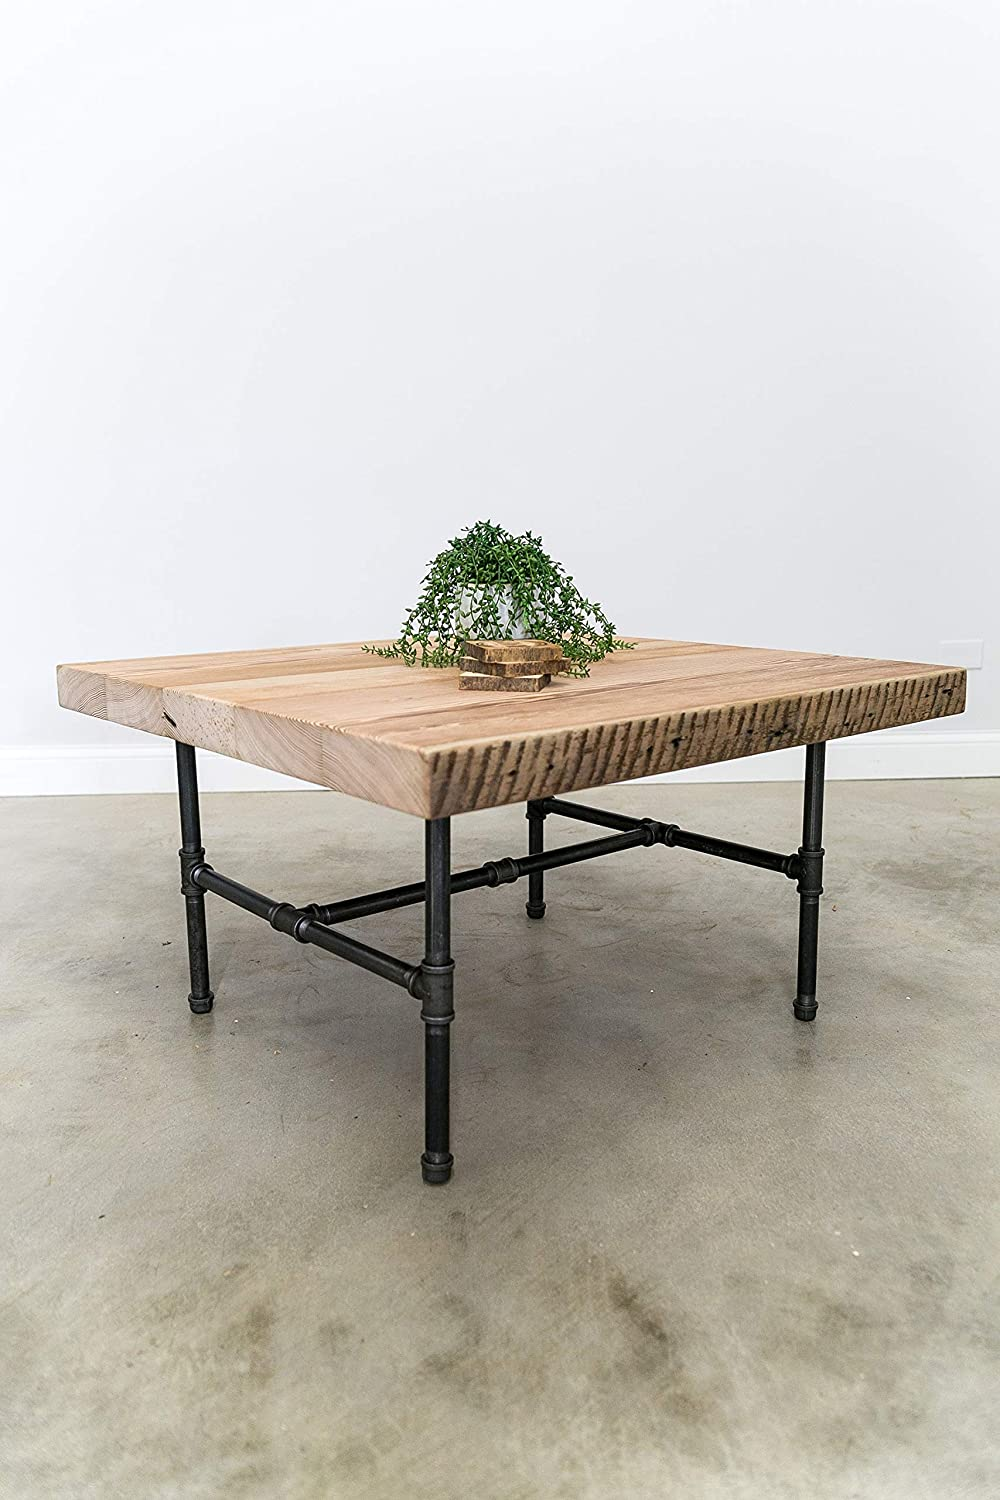 Amazon Com Square Coffee Table Made Of Reclaimed Wood And Iron Pipe Legs Reclaimed Wood Coffee Table Industrial Table Custom Designs And Sizes Welcome Made From Salvaged Barn Wood Fast Free Shipping